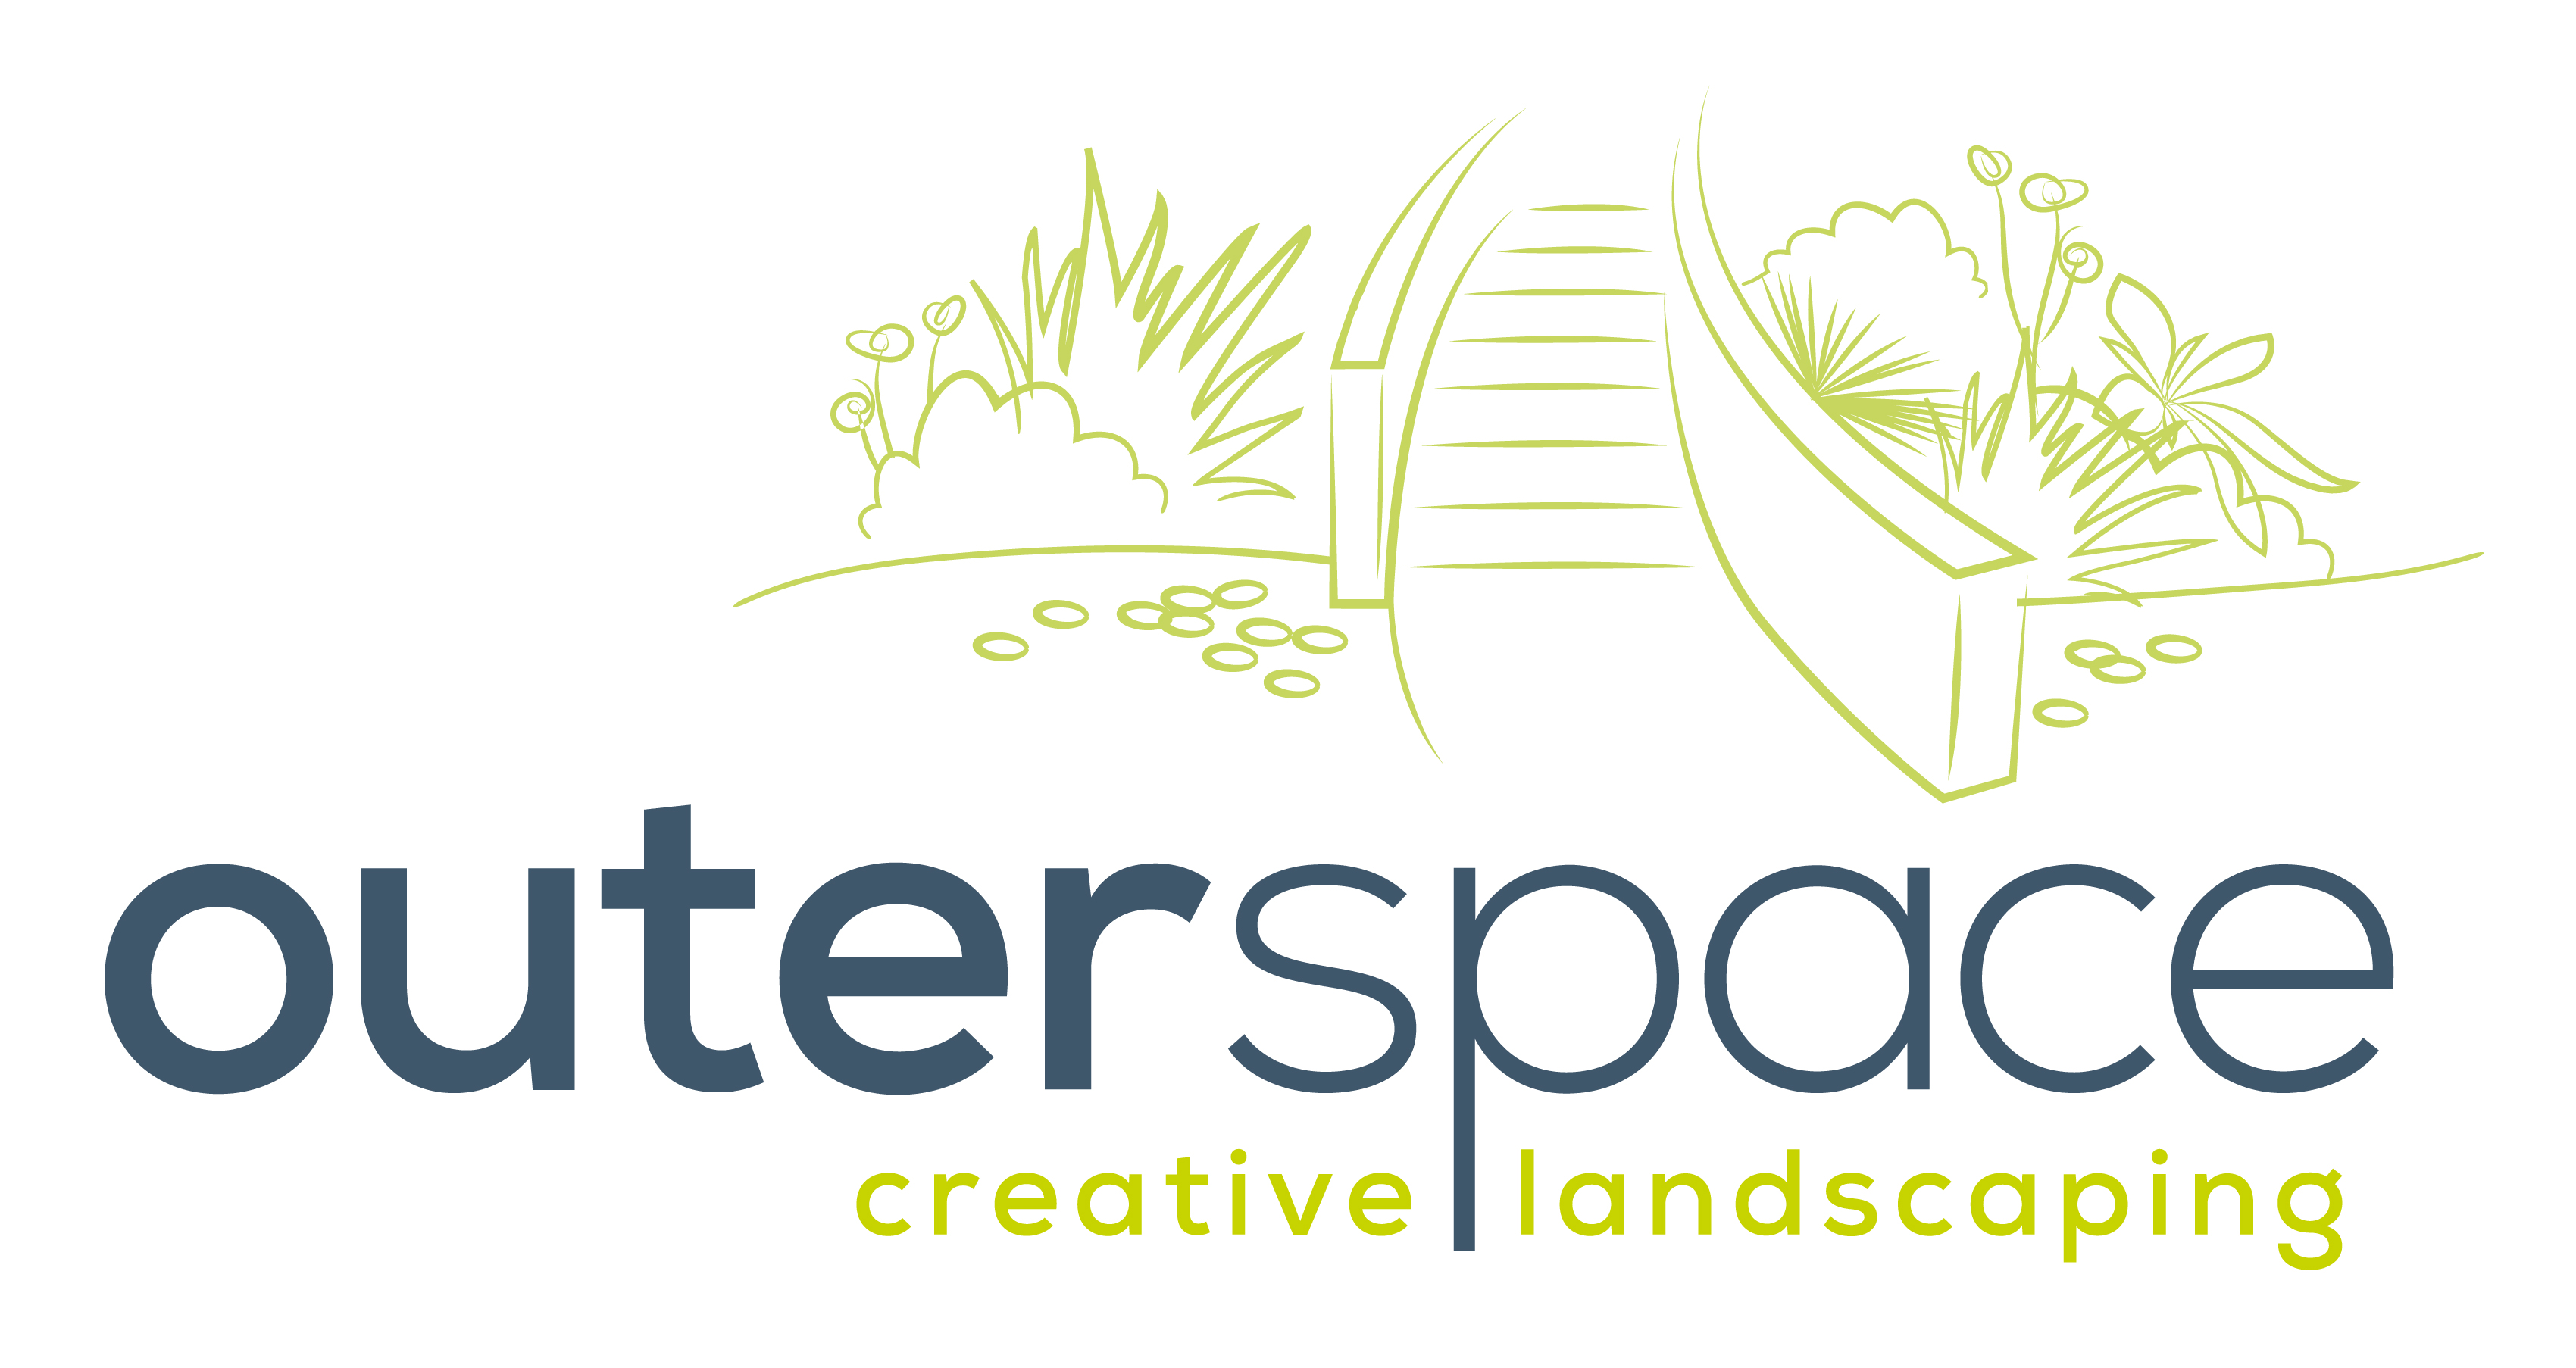 Company Profile Of Outerspace Creative Landscaping